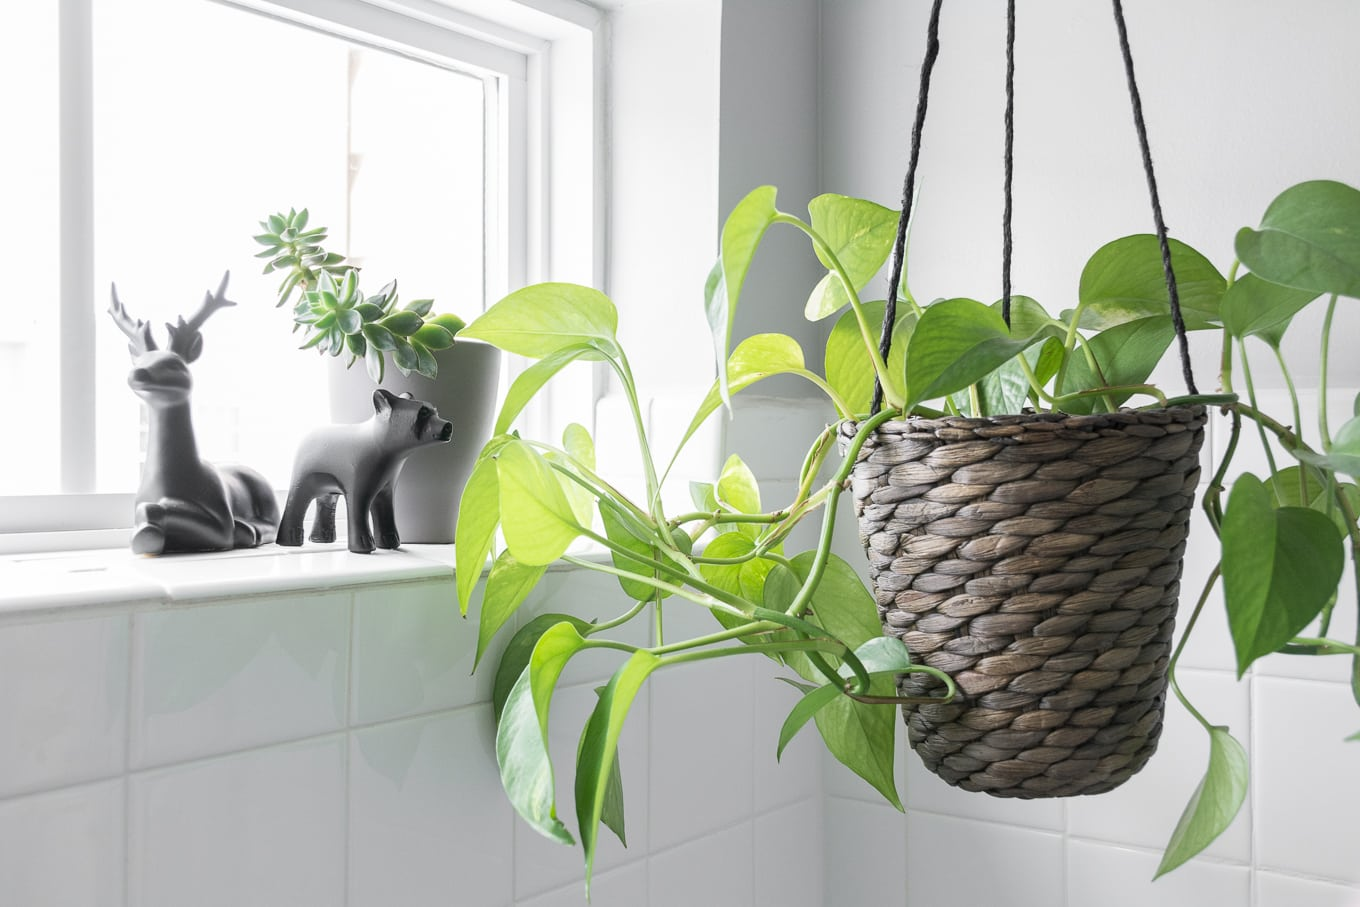 Hanging plant in a bathroom